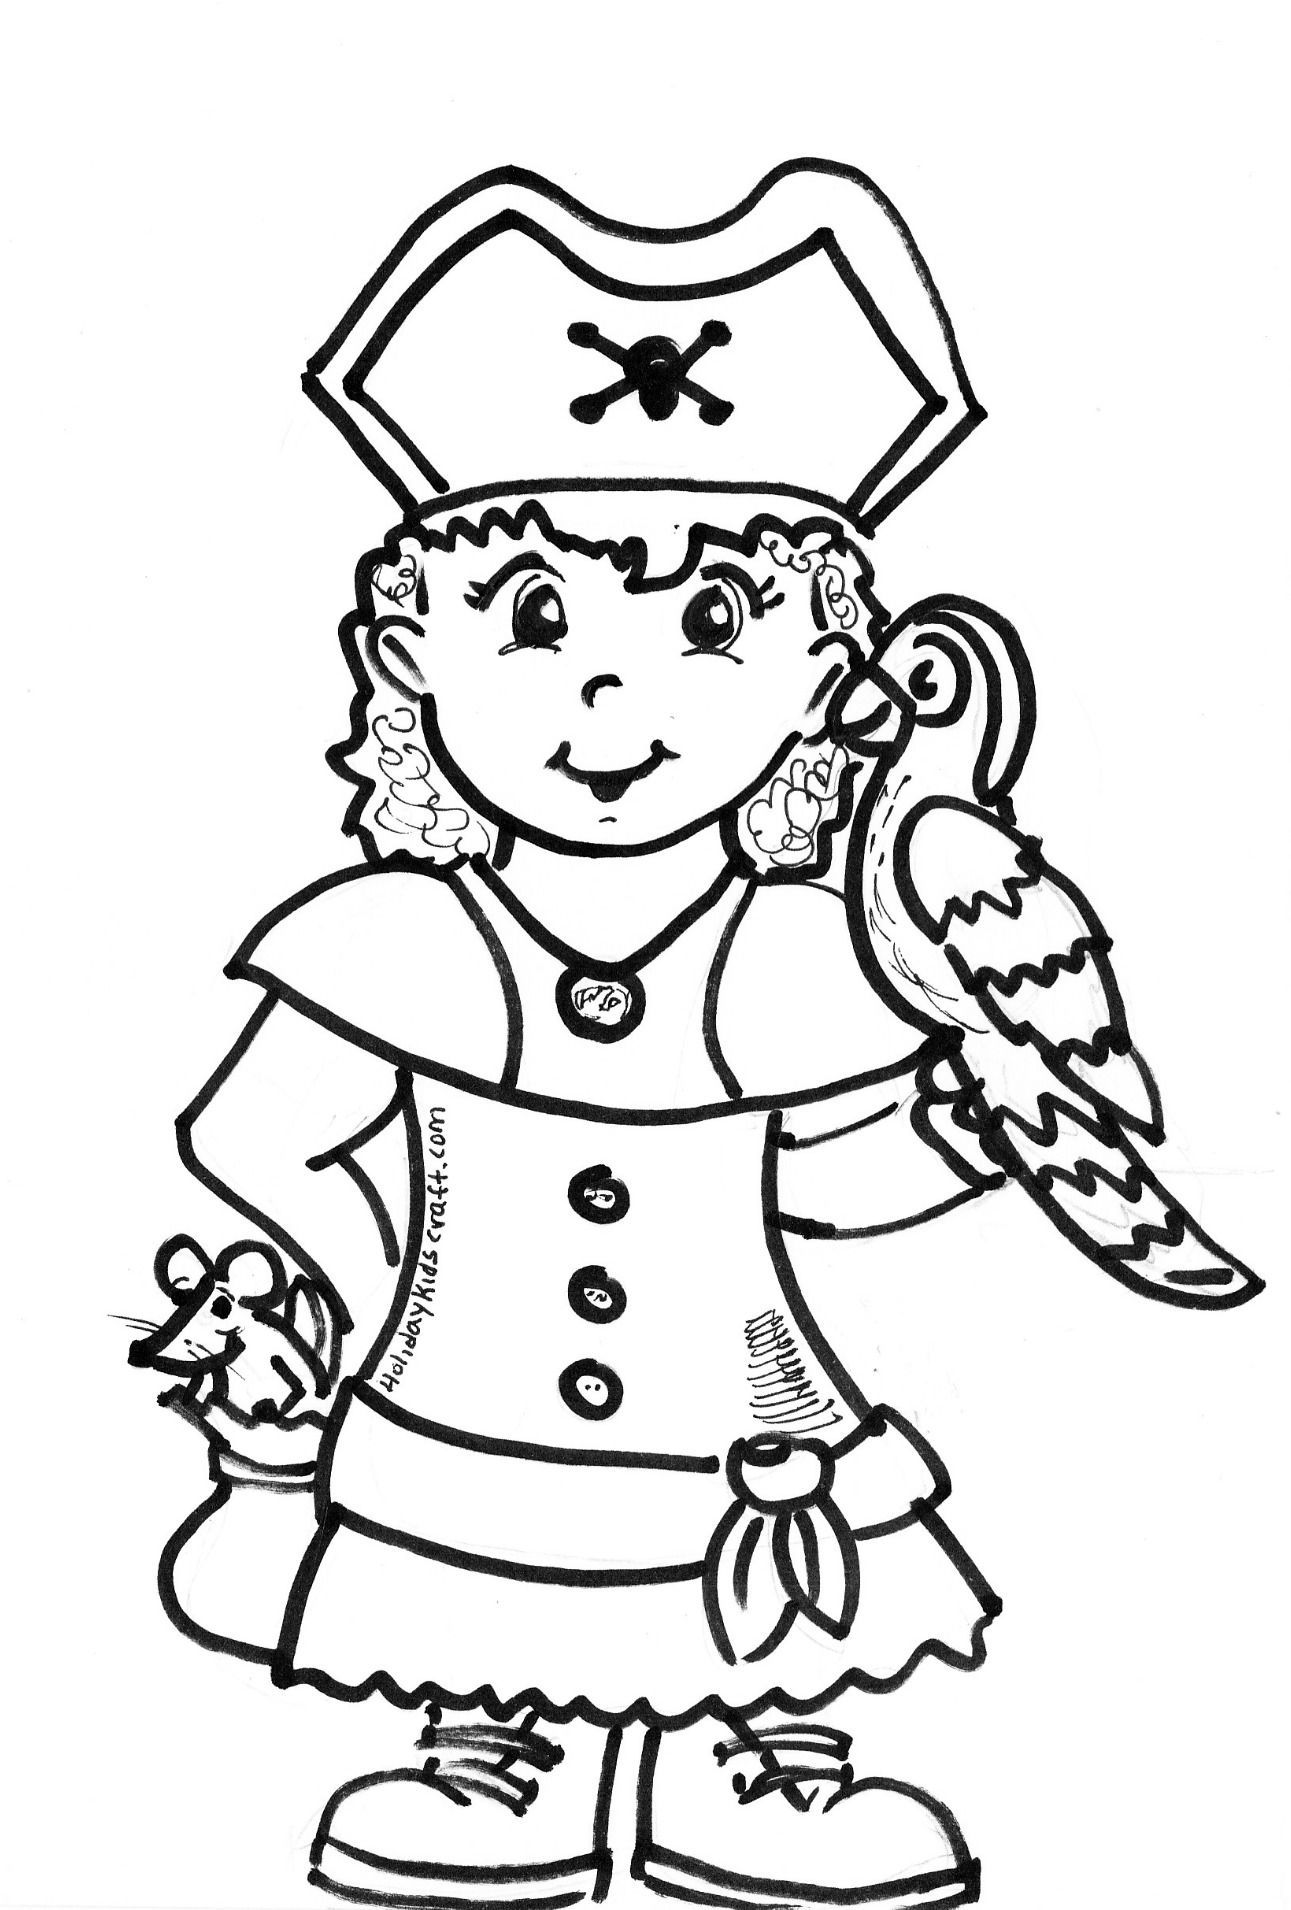 Pirate Coloring Pages With Images Pirate Coloring Pages